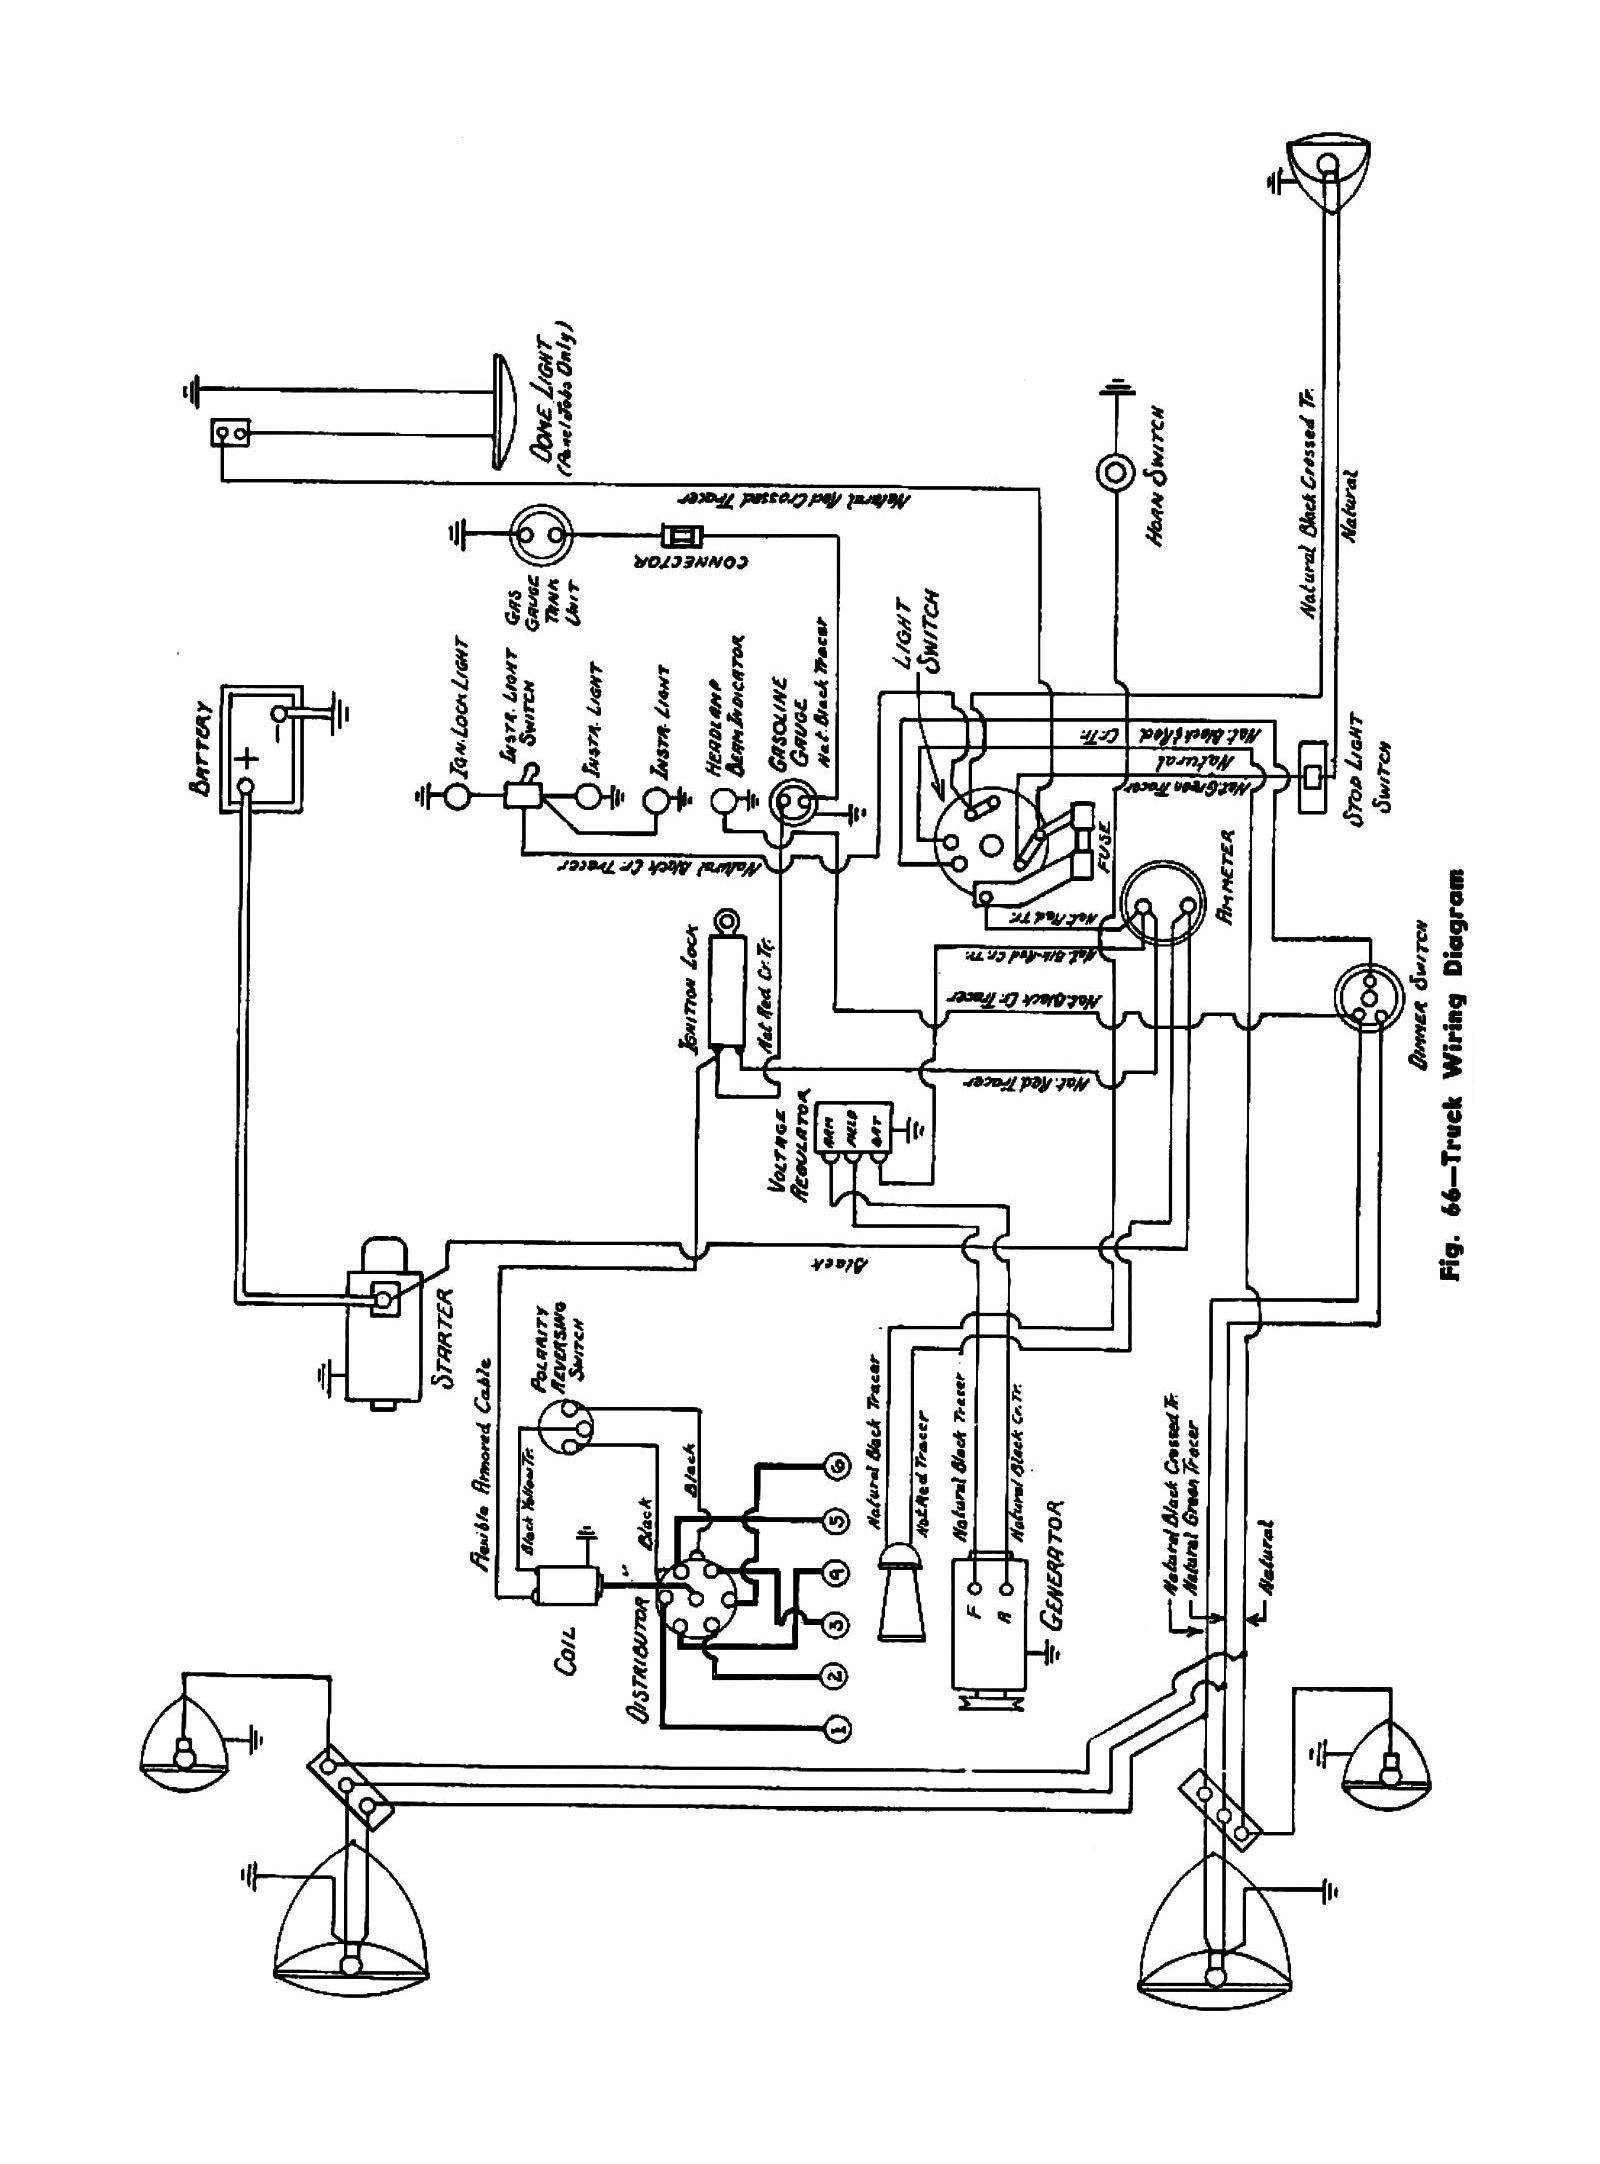 1948 Chevy Wiring Diagram Central Com Circuitdiagram Automotivecircuit Buickairconditioningcircuit Diagrams Plymouth